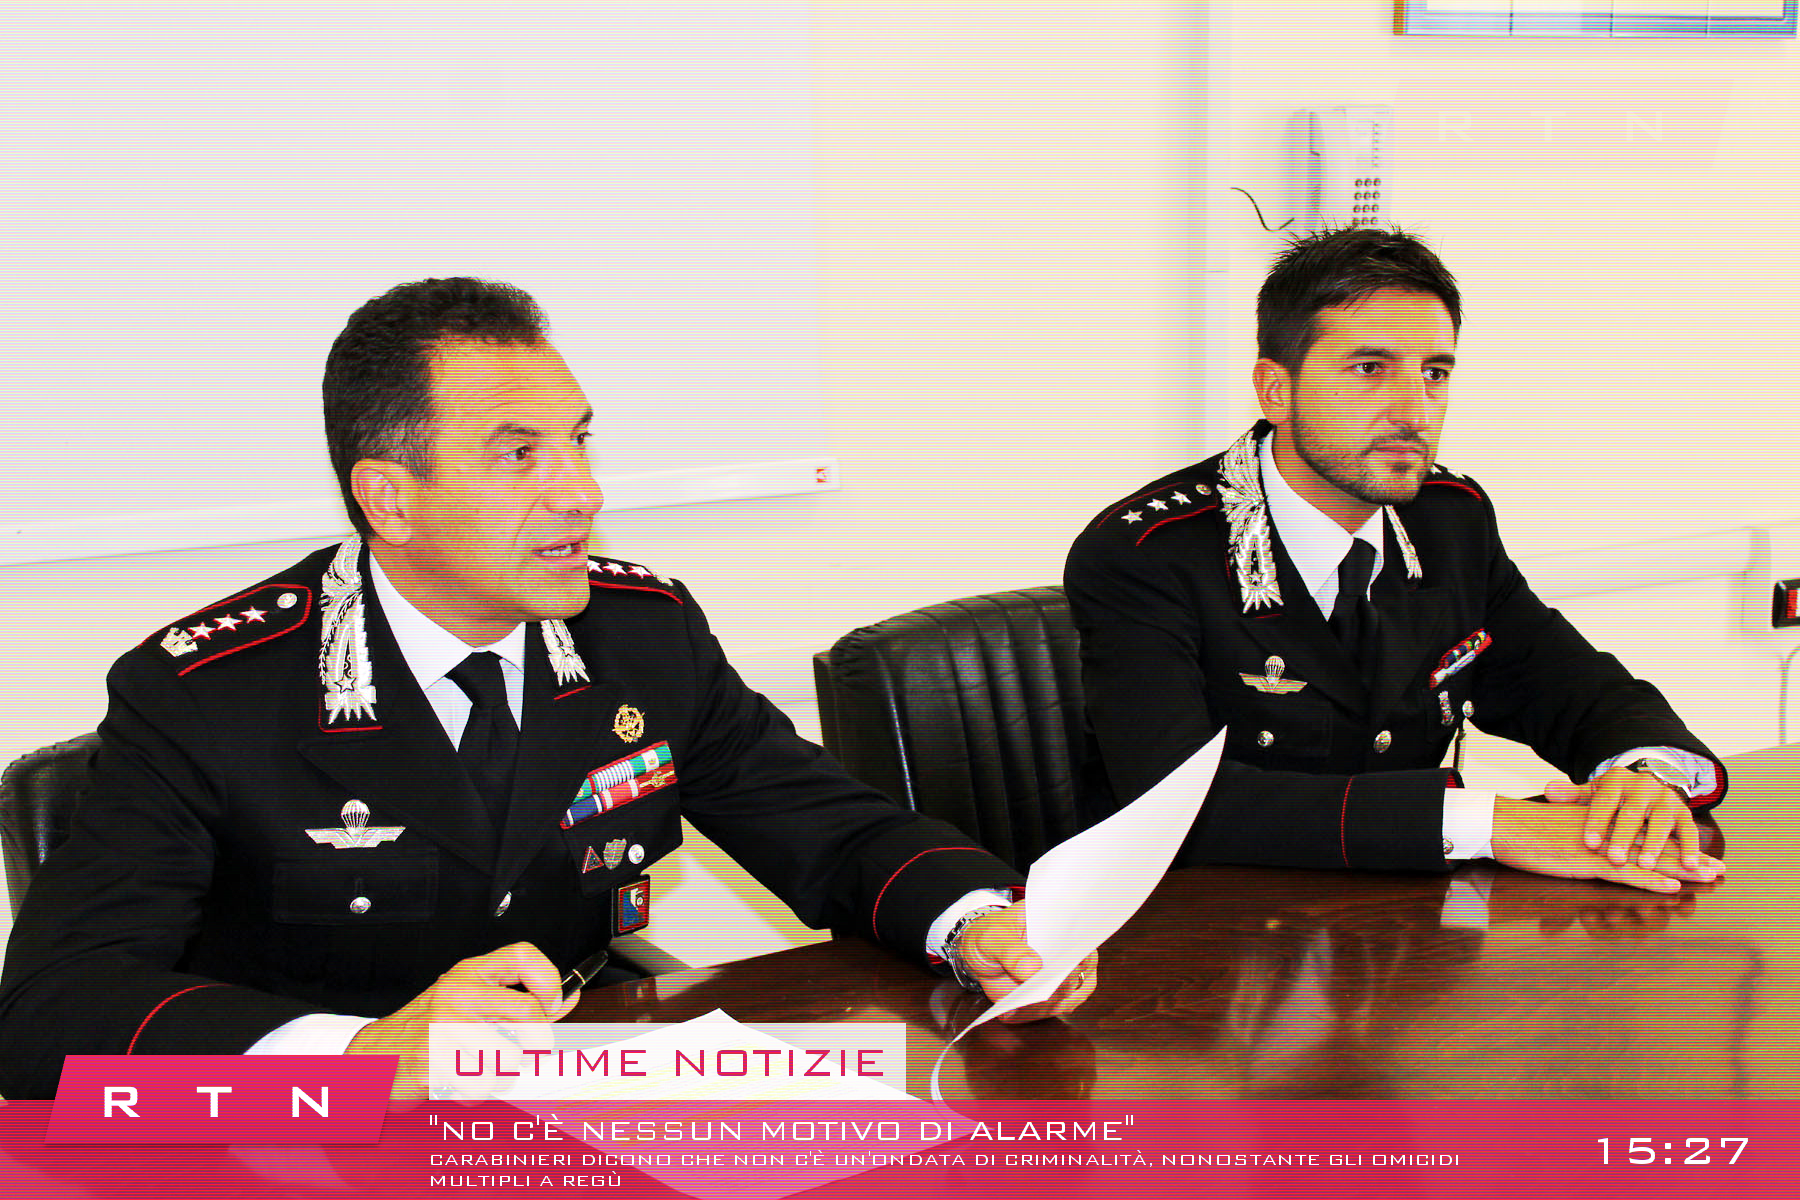 Carabinieri in a press conference